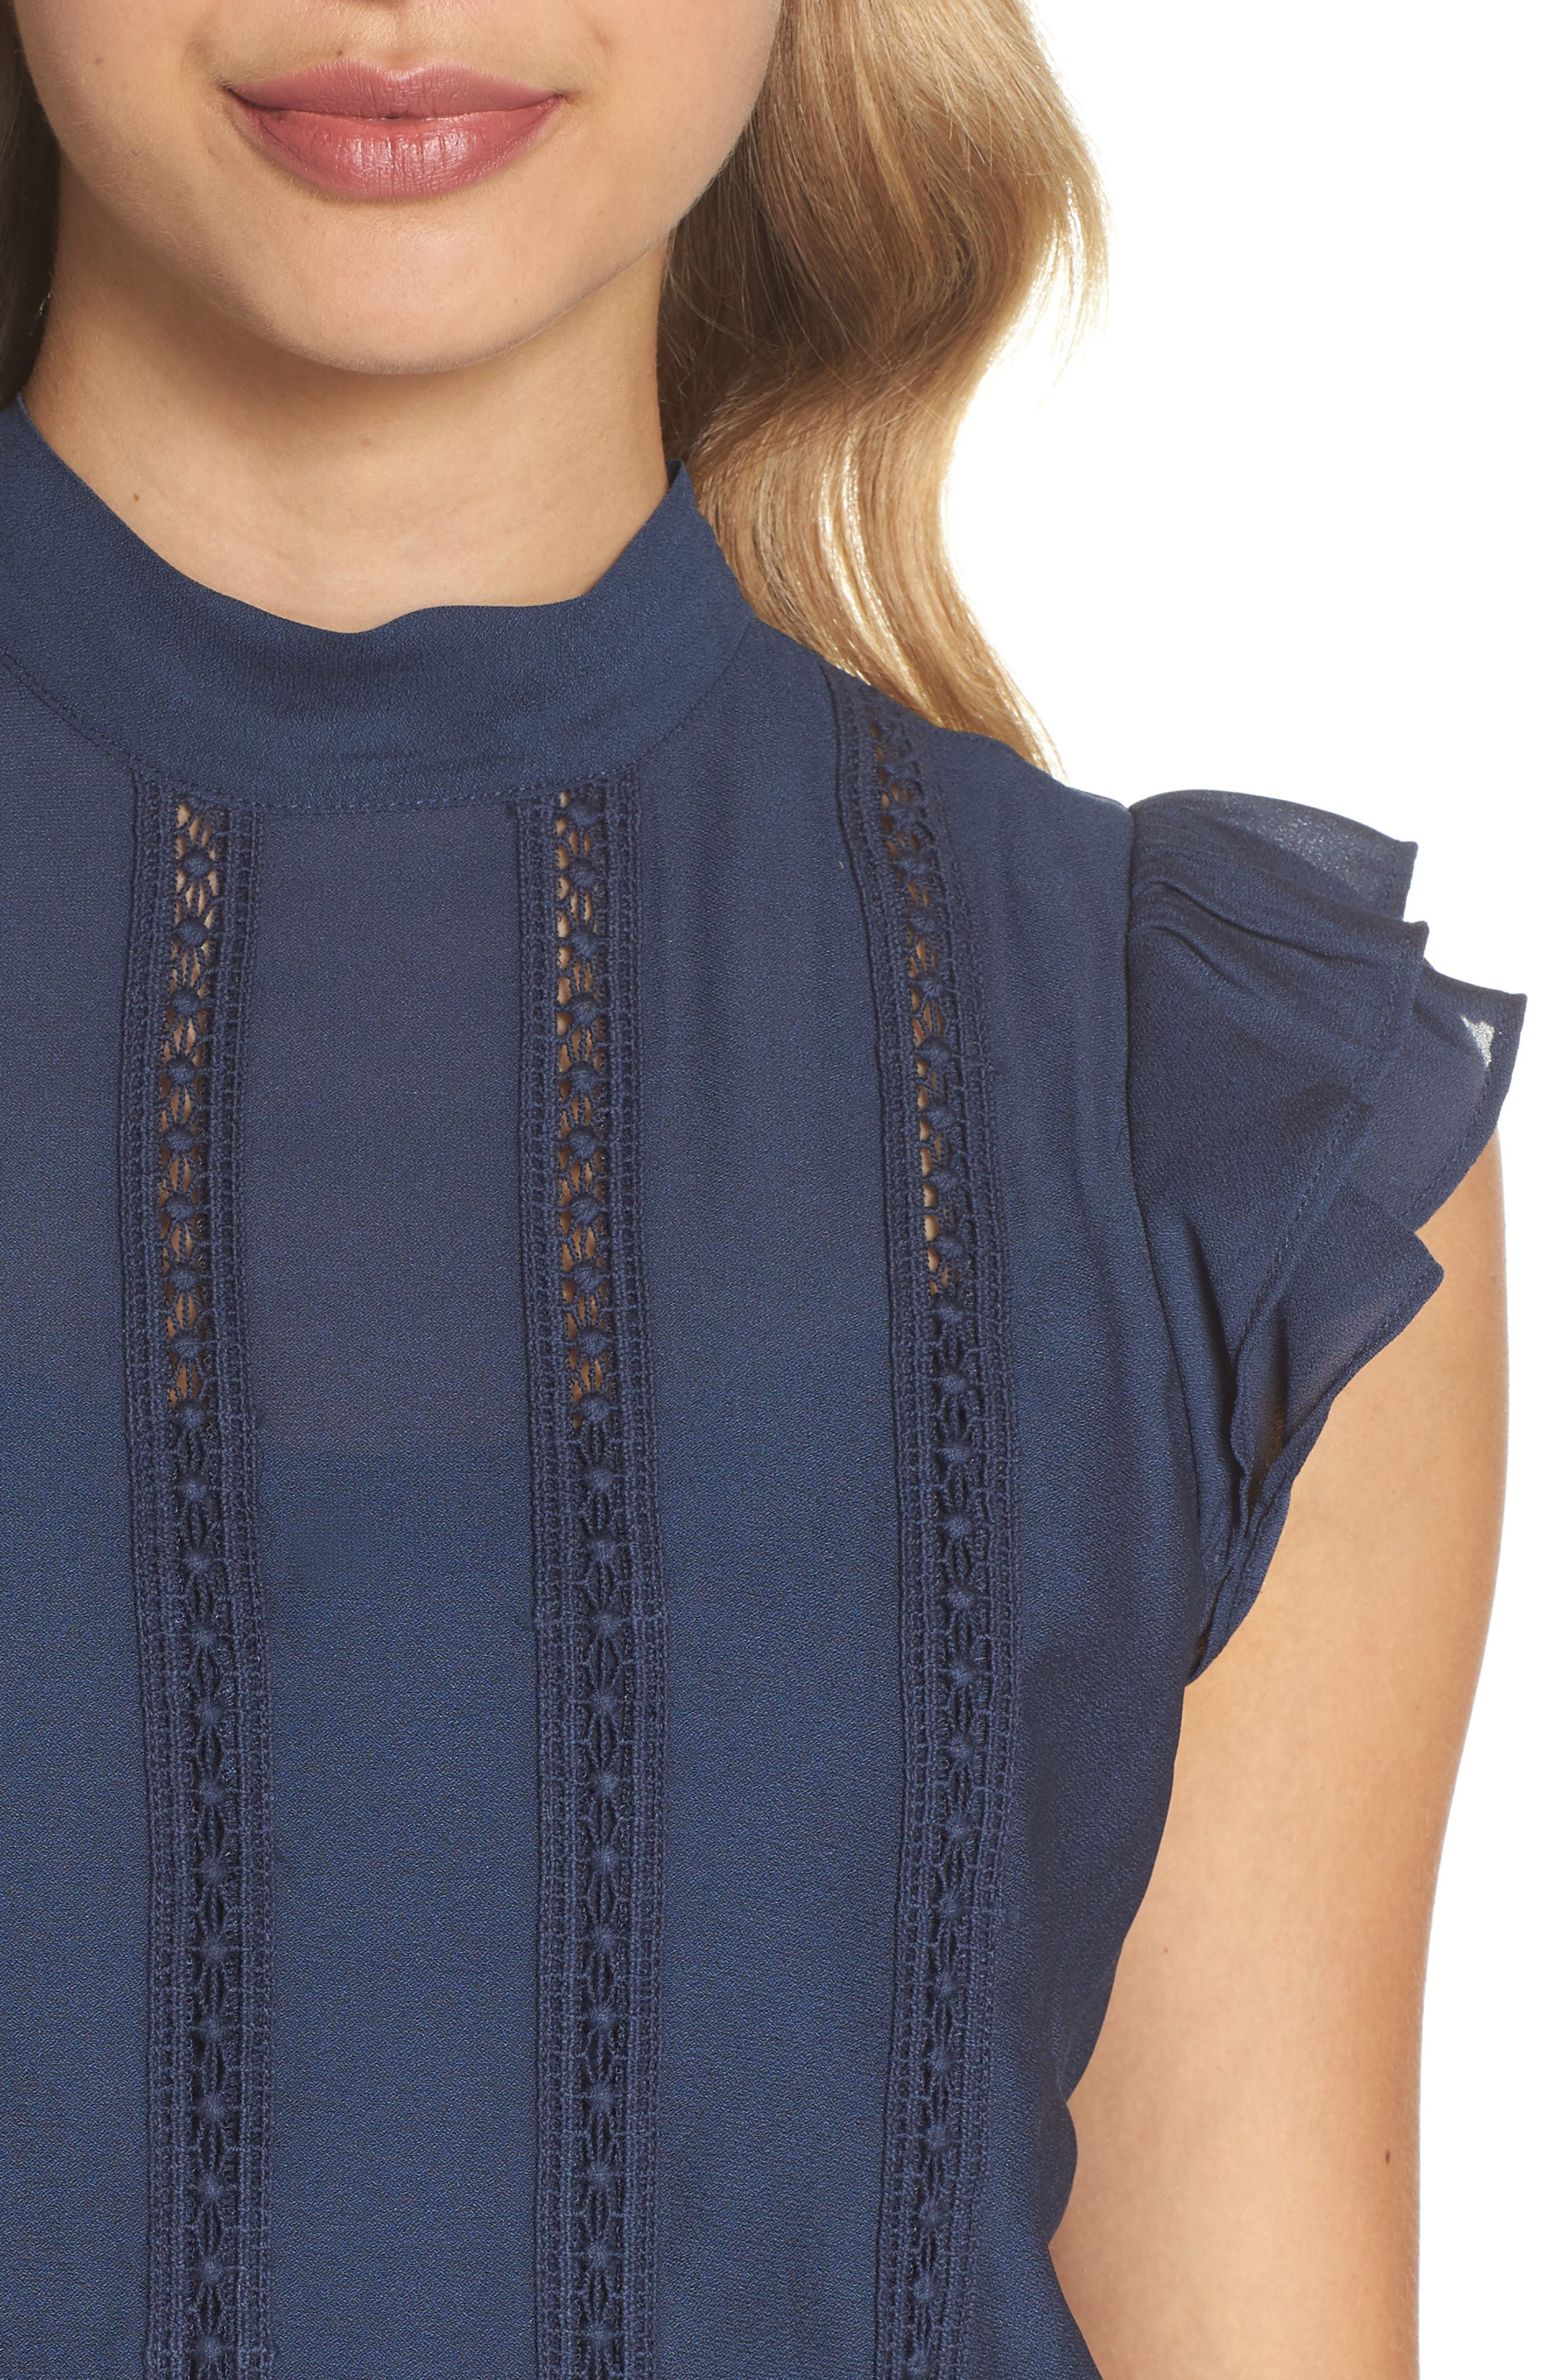 Embroidered Bodice A-Line Dress,                             Alternate thumbnail 4, color,                             Teal Moroccan